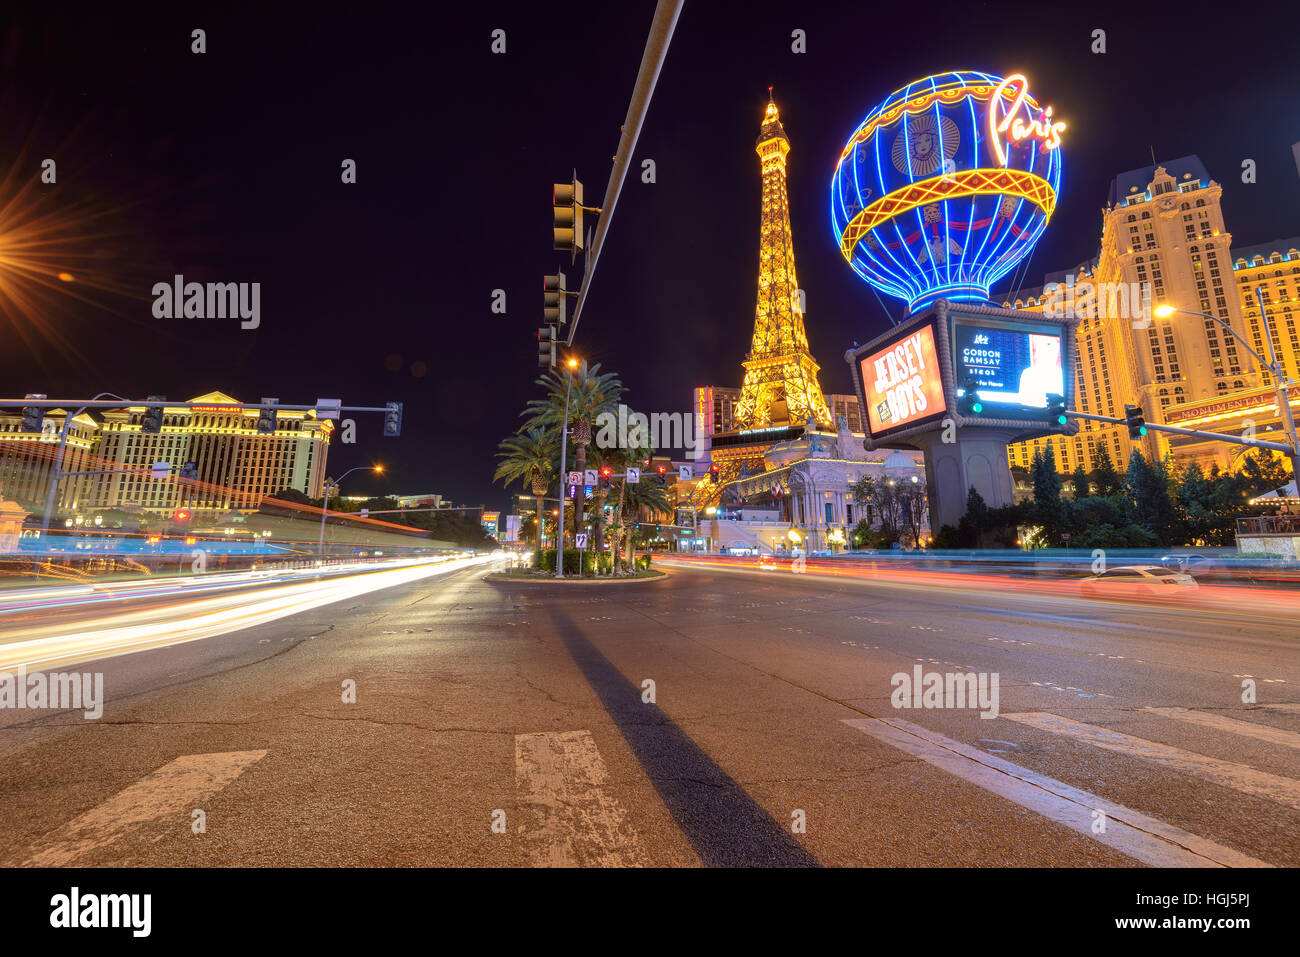 Las Vegas Strip. - Stock Image